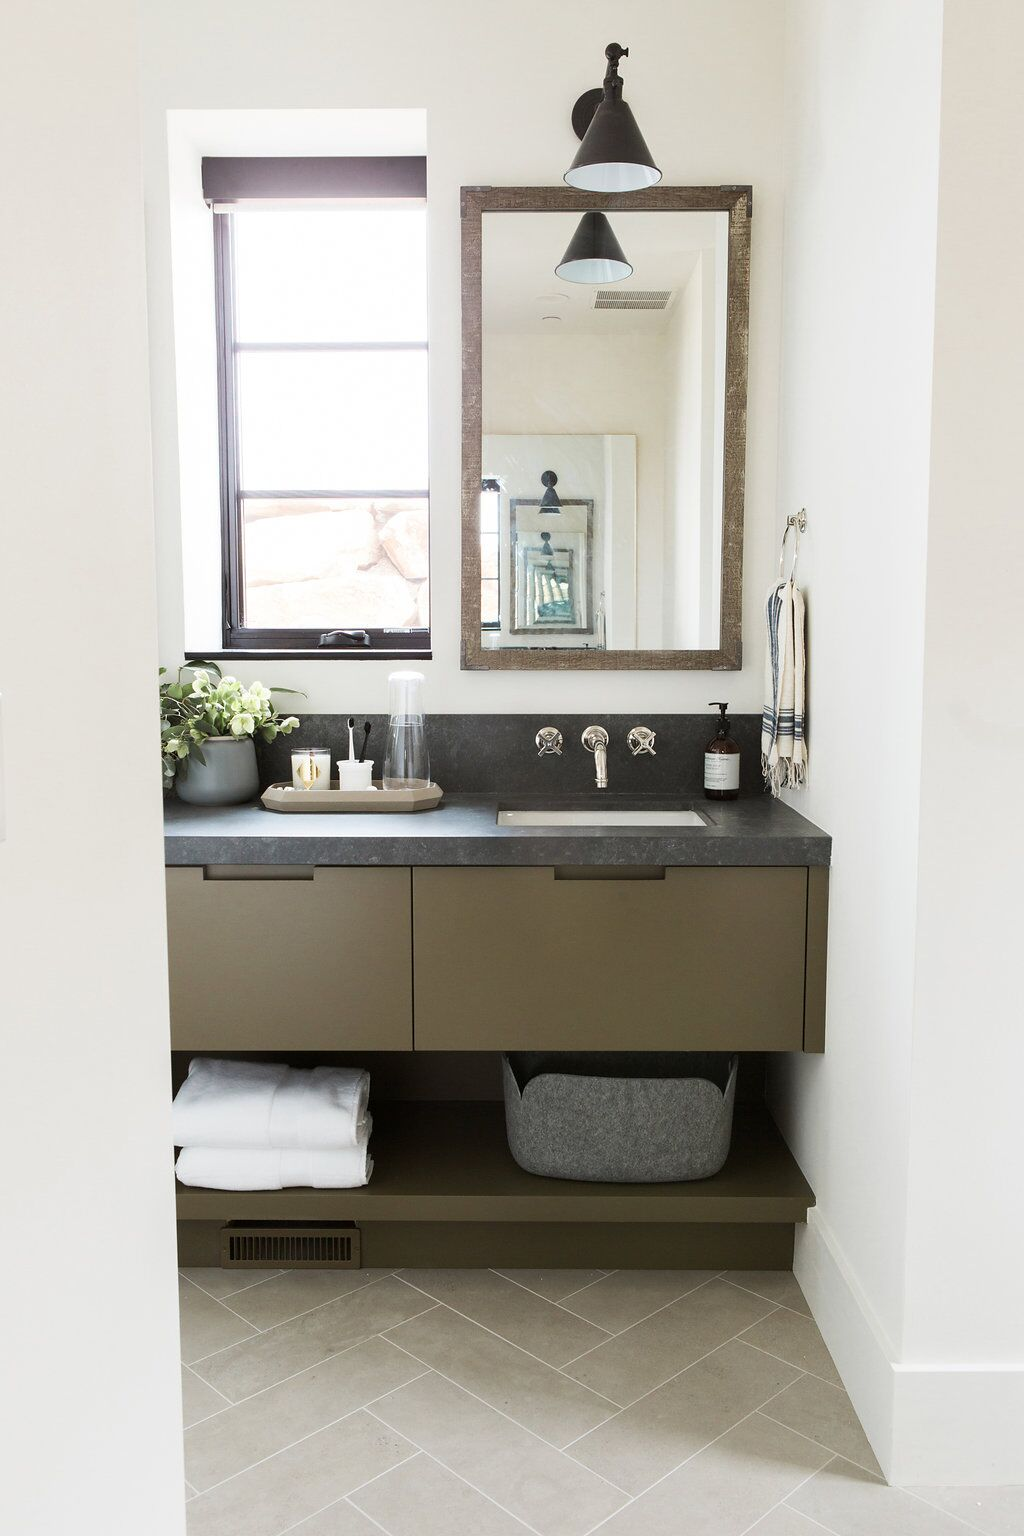 Guest bathroom with olive green cabinets and dark countertops and limestone herringbone floors